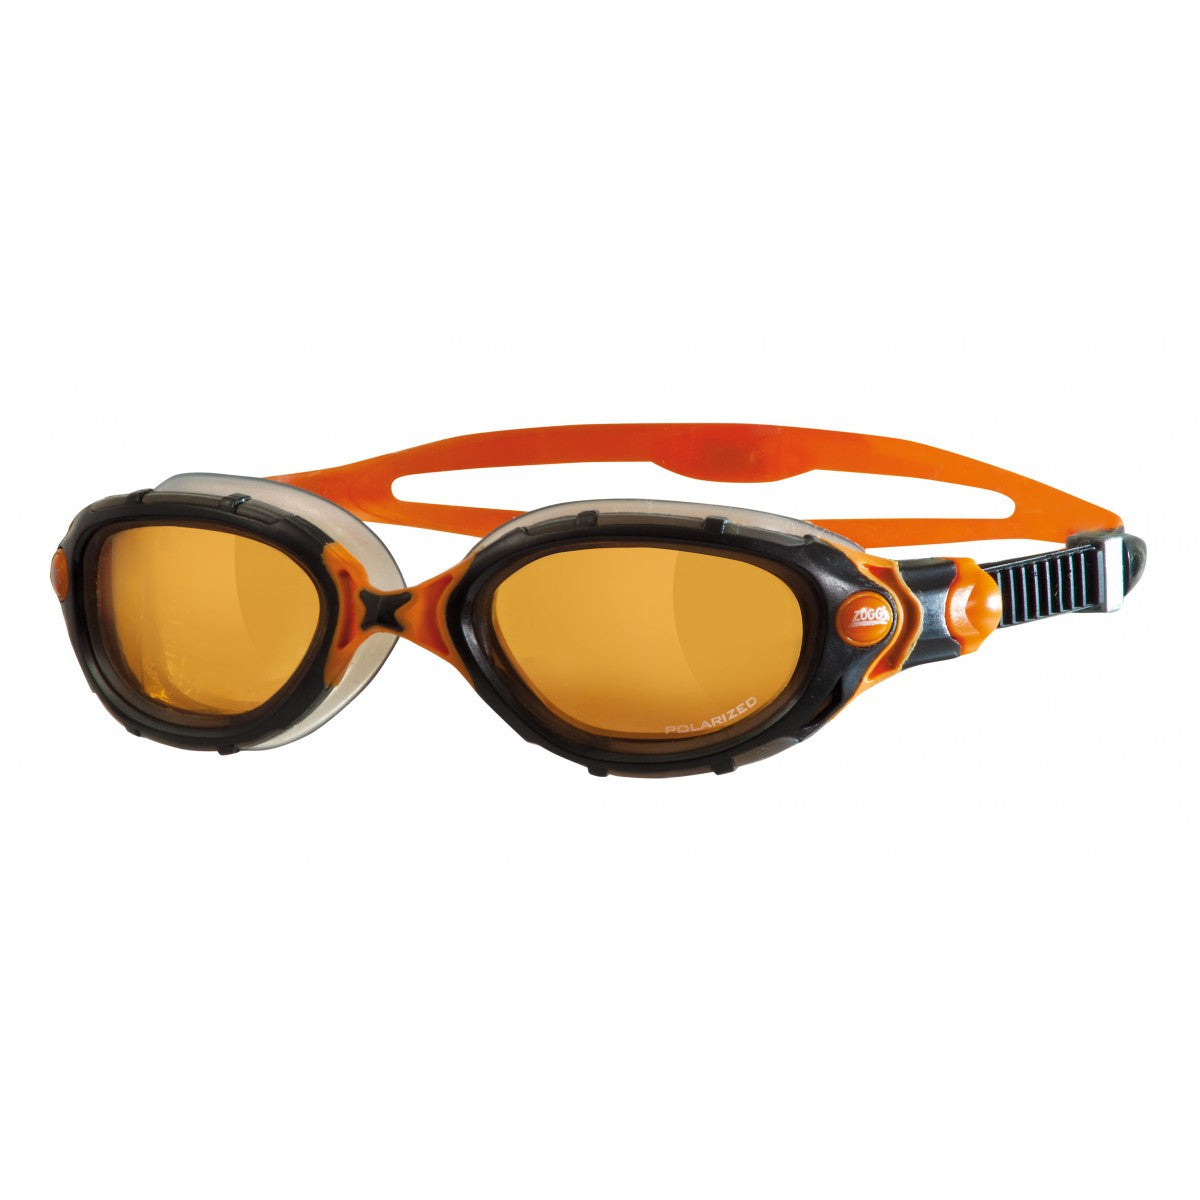 Zoggs Predator Flex Polarized Ultra Swimming Goggles